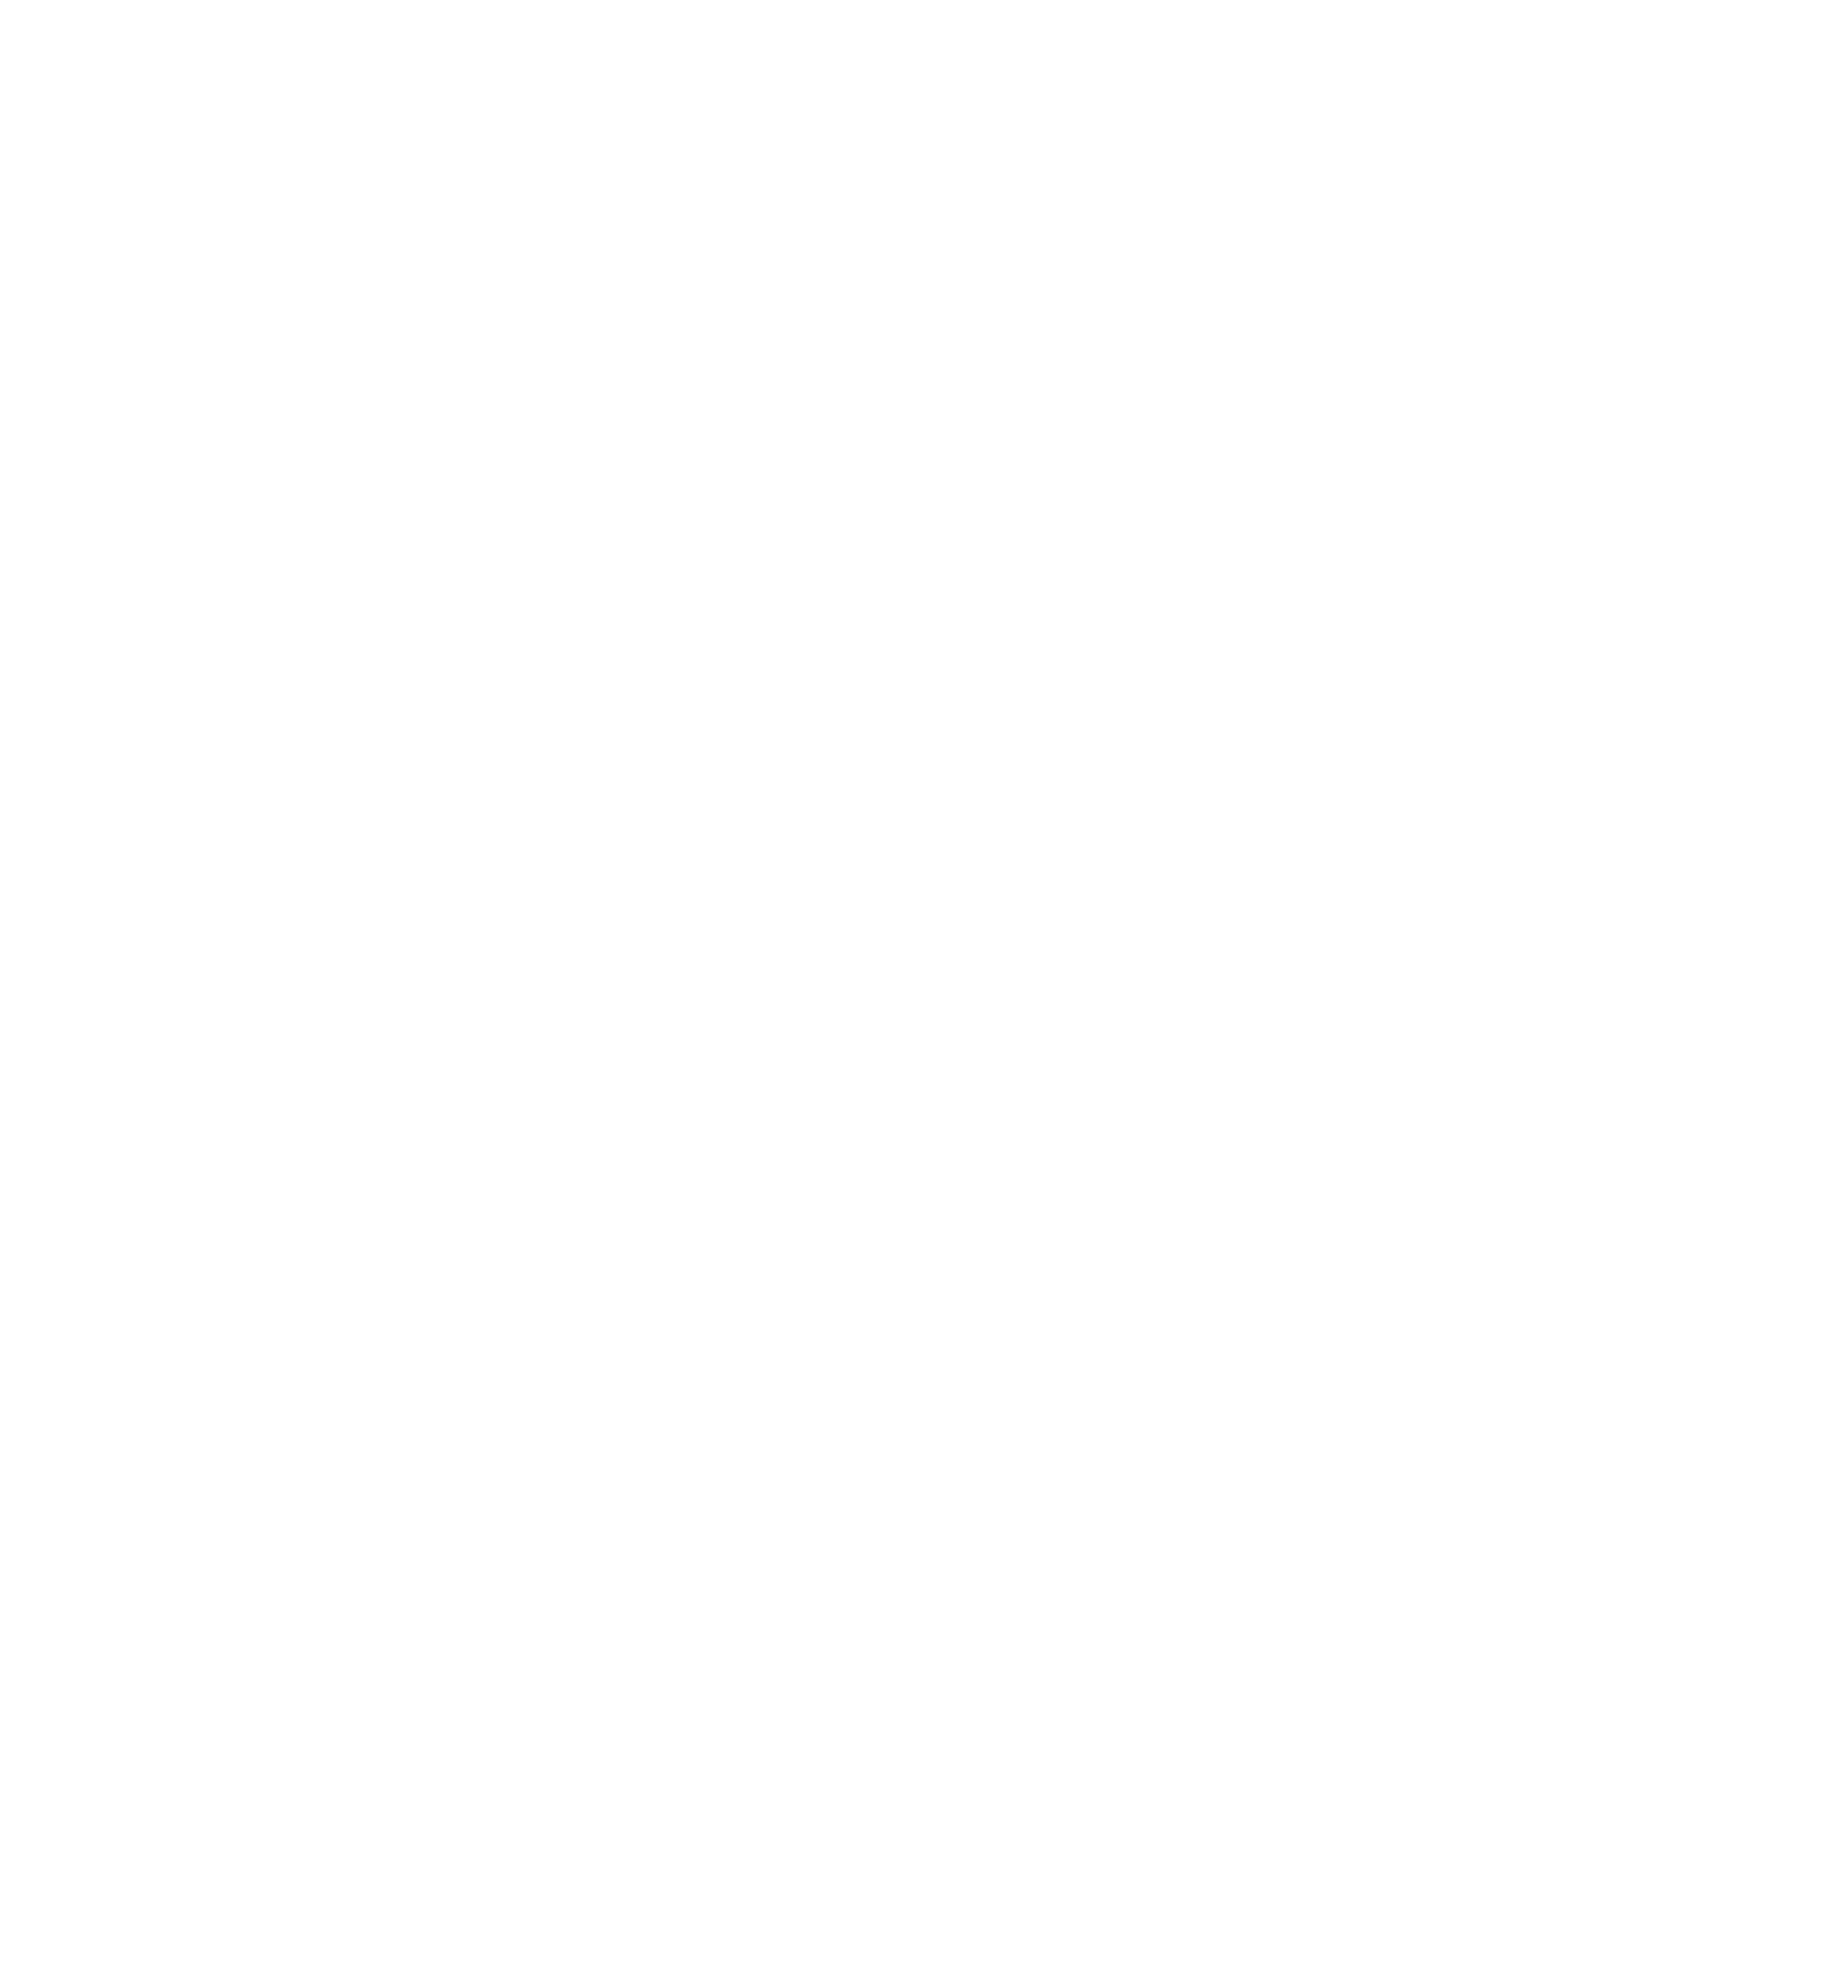 DT Wall Roofing